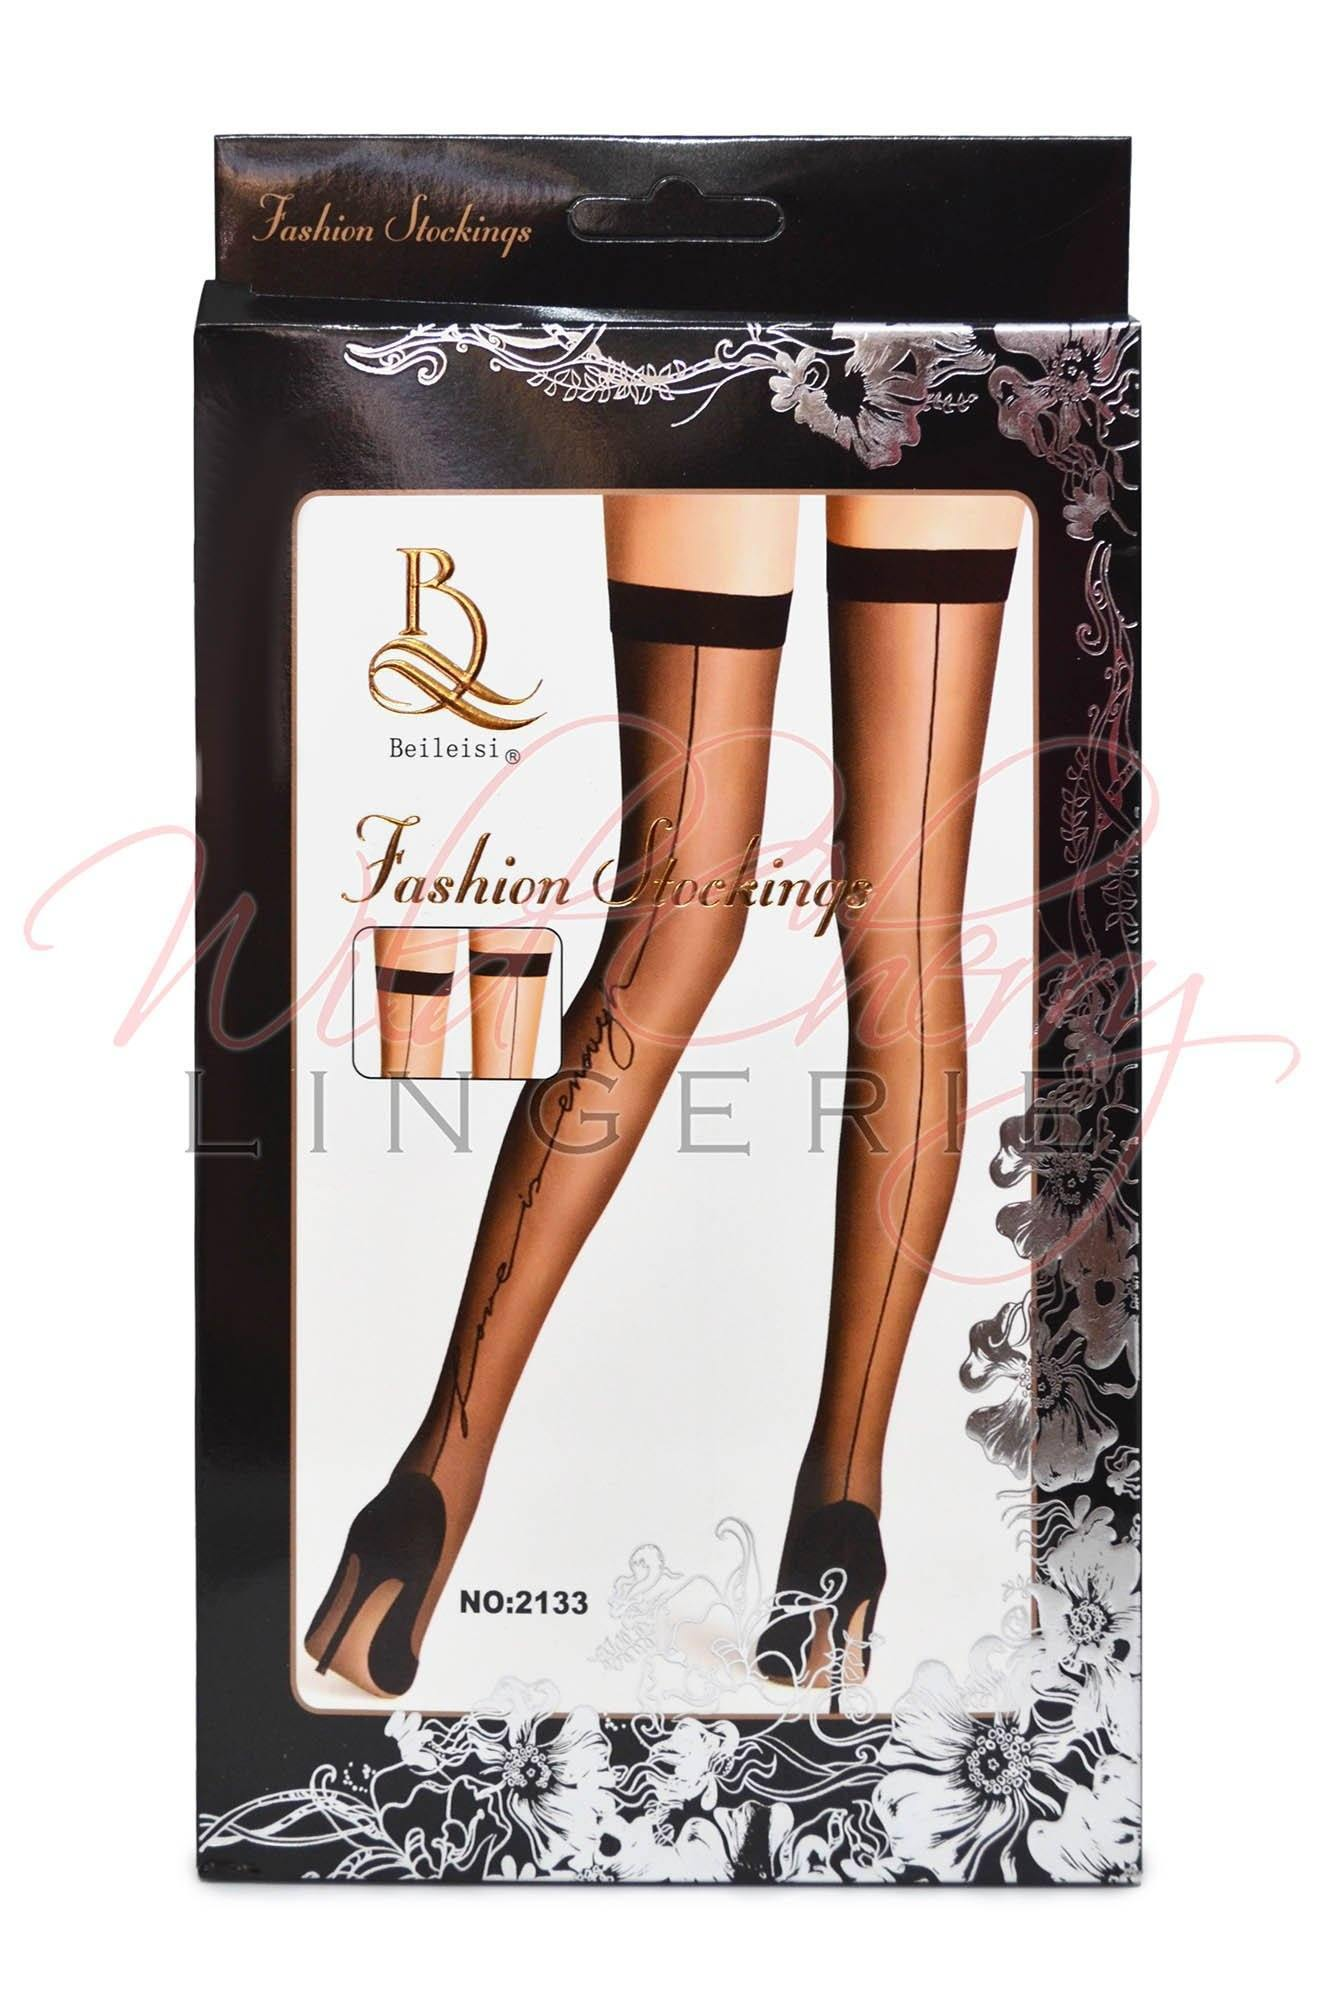 Classic Sheer Thigh High Stockings, Legwear, Unbranded - Wild Cherry Lingerie